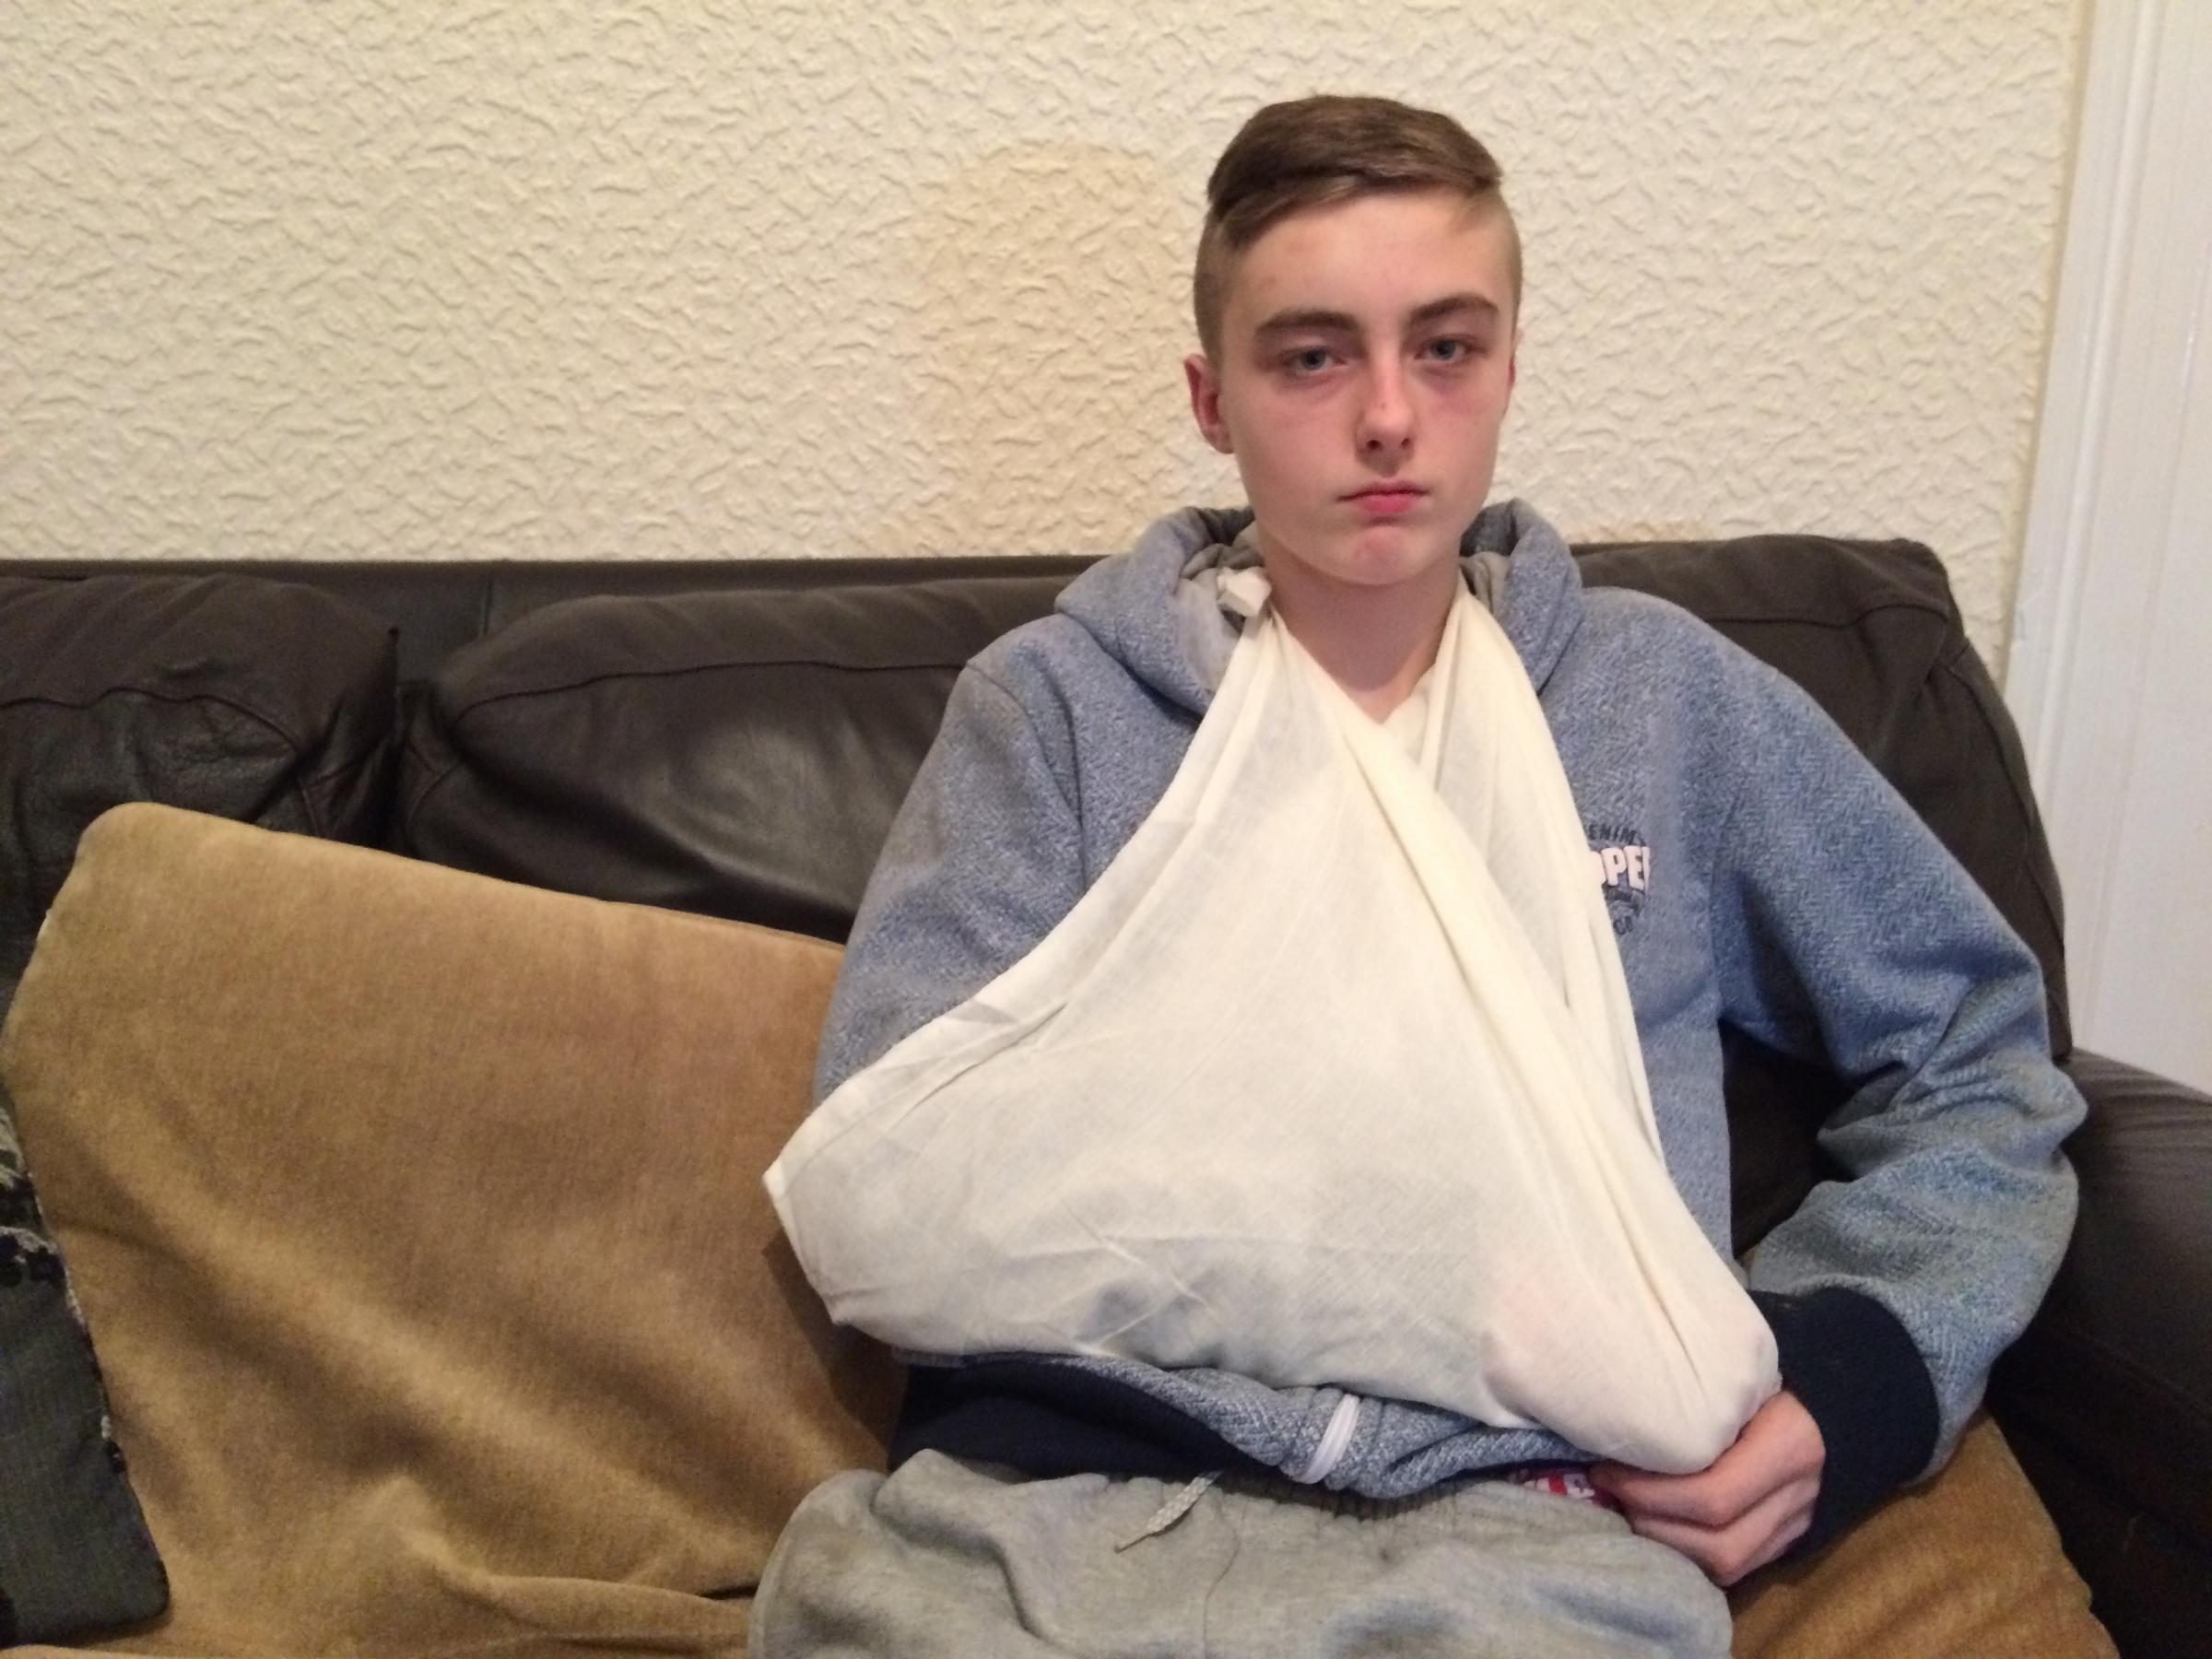 Teenage Brother Attacked in West Yorkshire As little Sister Watches